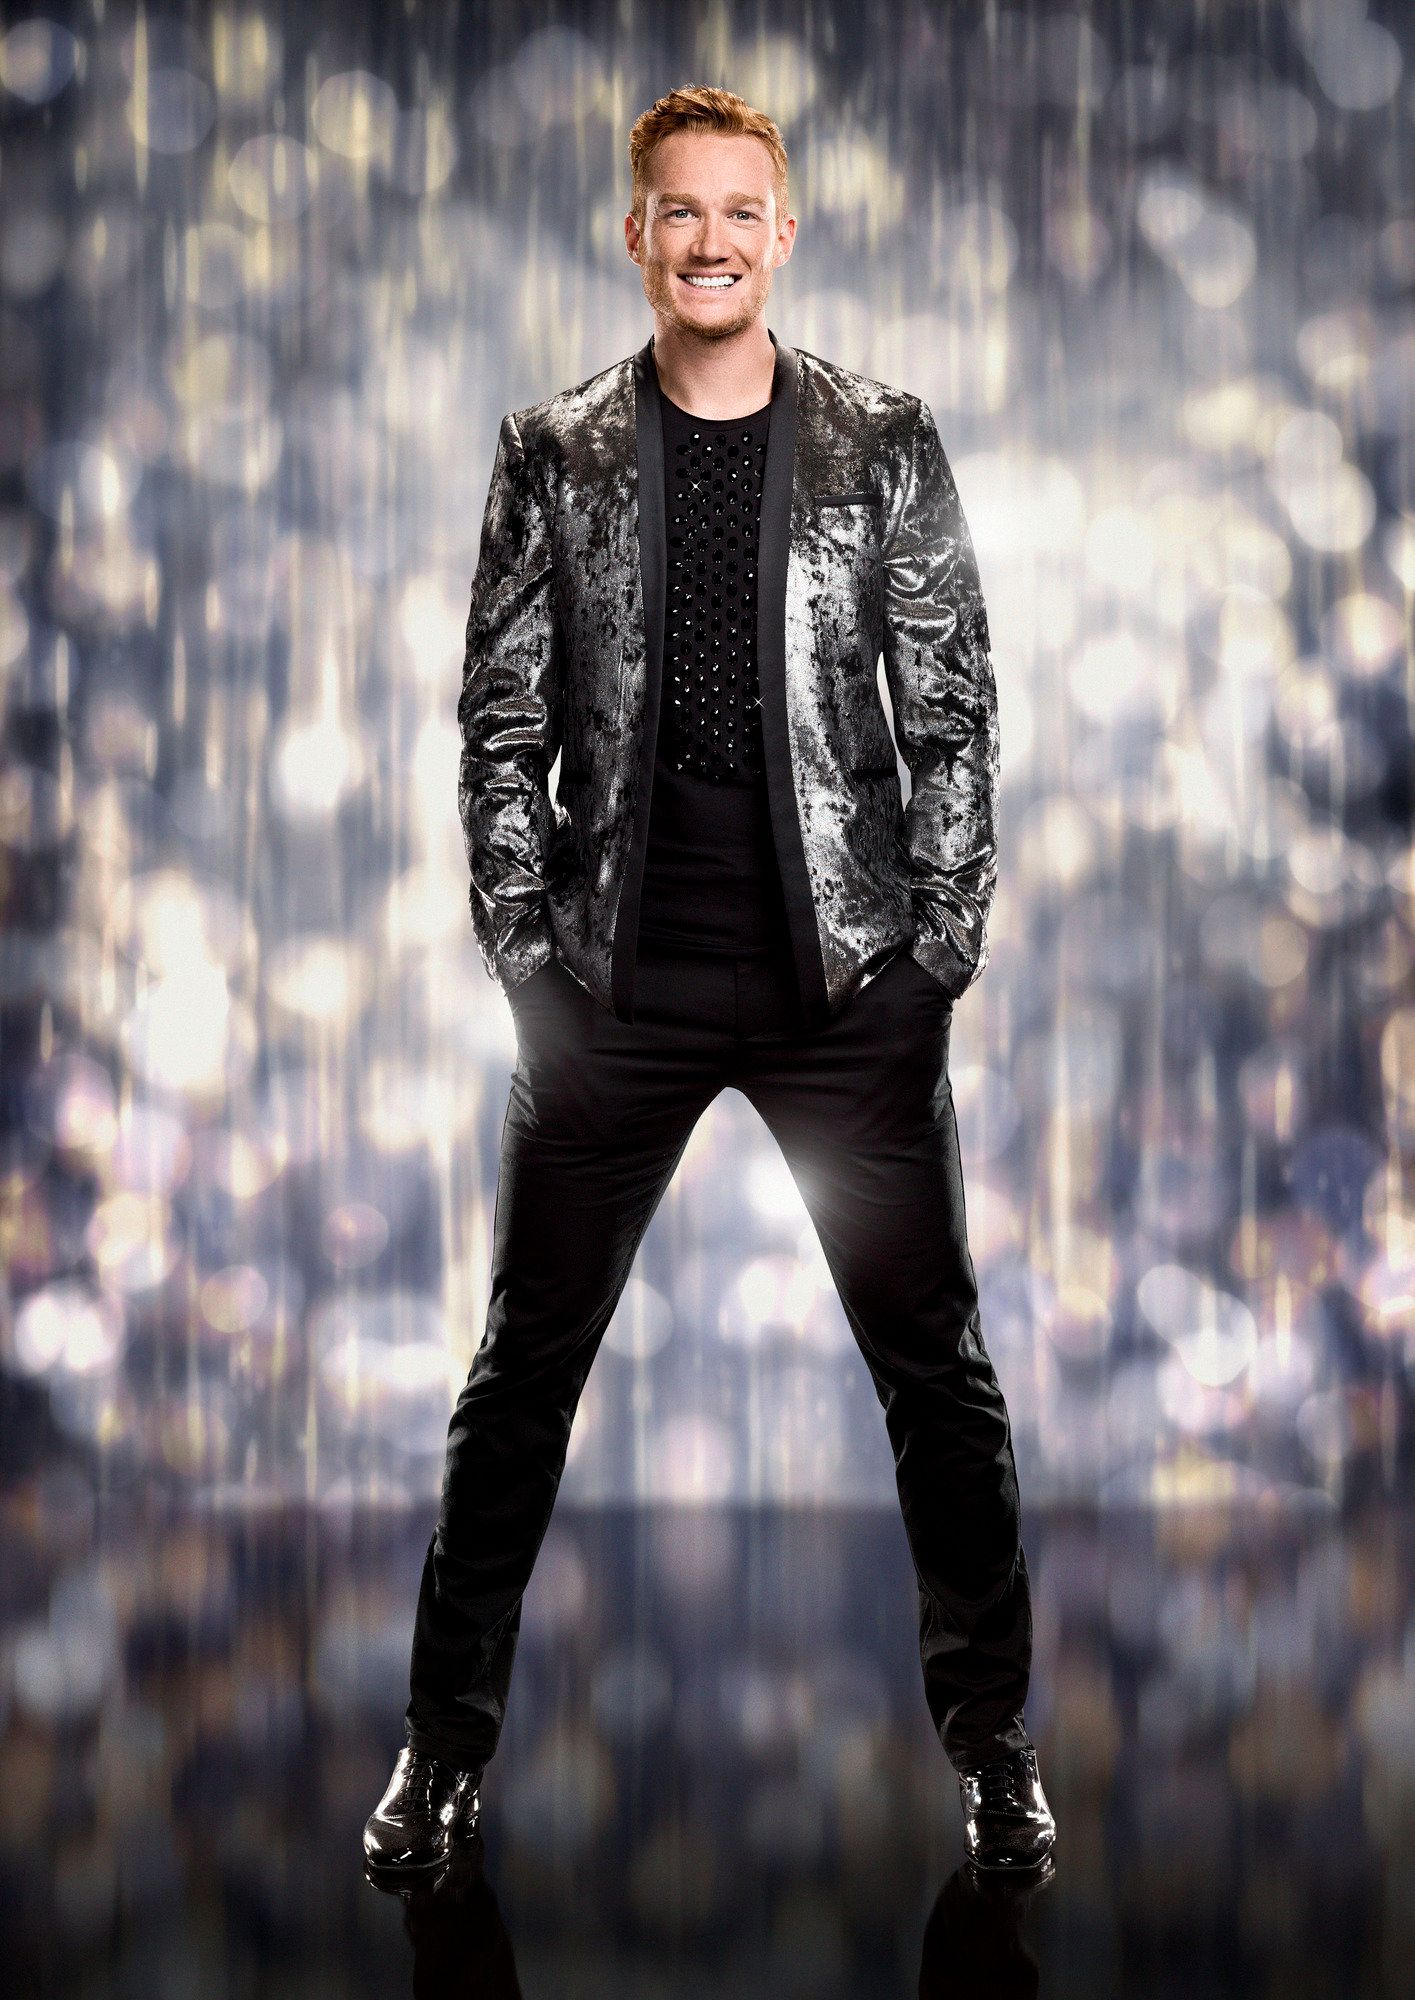 Greg Rutherford is one of the 15 celebs on the new series of 'Strictly Come